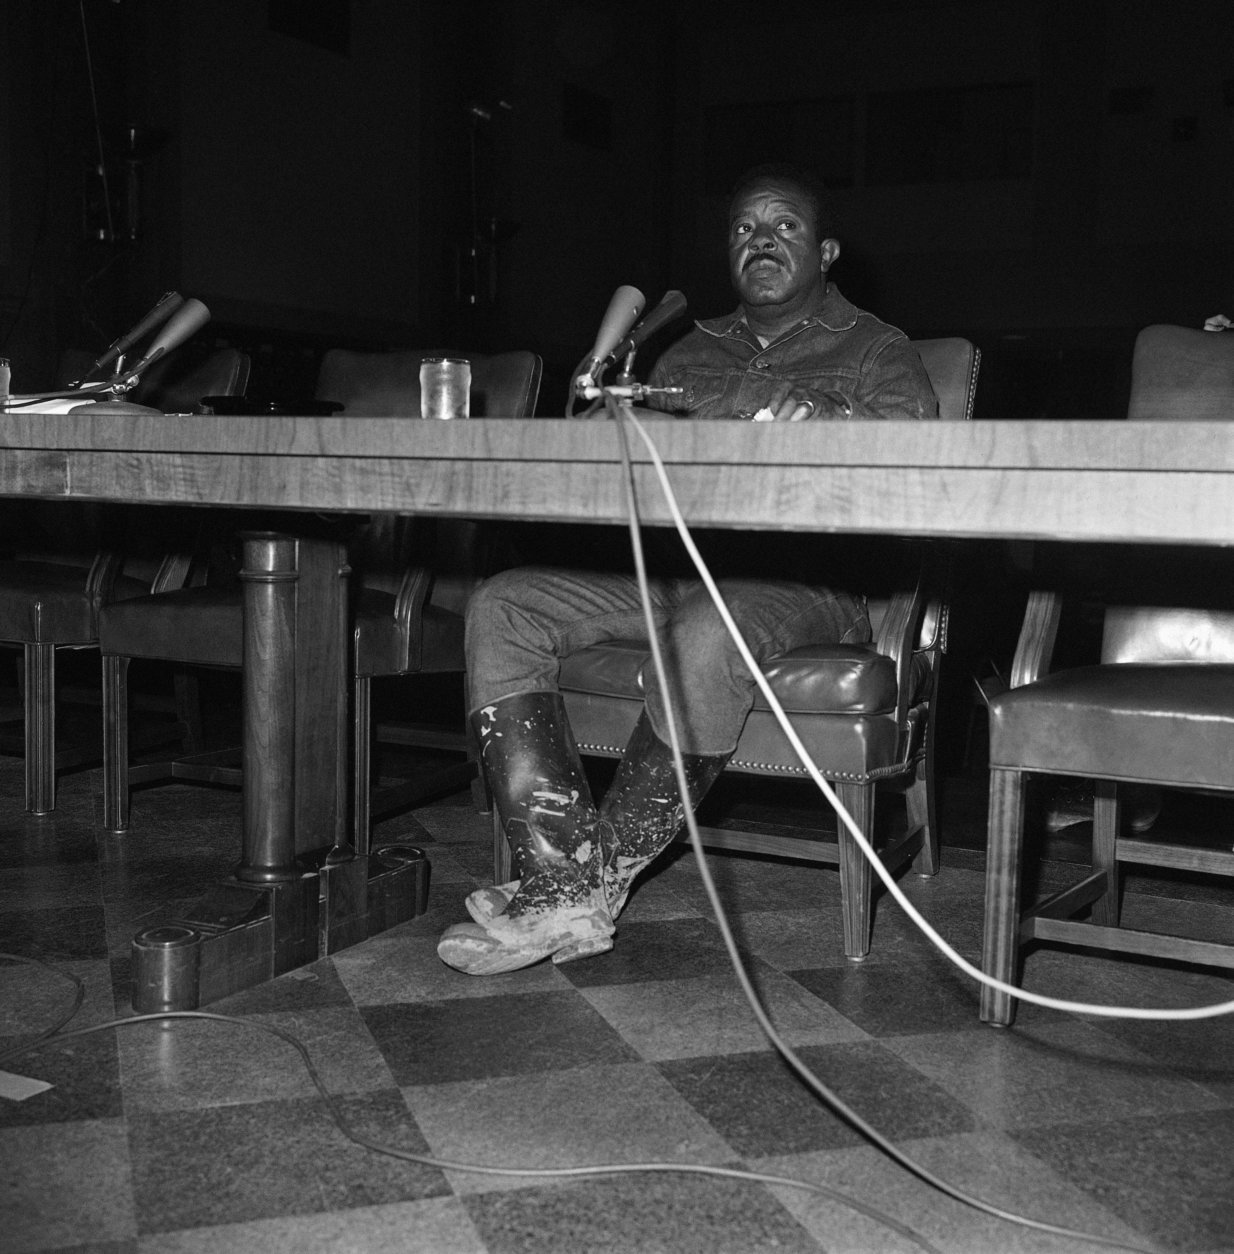 The Rev. Ralph Abernathy, head of the Southern Christian Leadership conference and leader of the Poor People's Campaign, displayed mud-caked boots as he testified in Washington on May 29, 1968 before a Senate subcommittee on manpower, poverty and employment. Before testifying, Abernathy had been at Resurrection City, which is covered with ankle deep mud after two days of rain. (AP Photo/Henry Griffin)